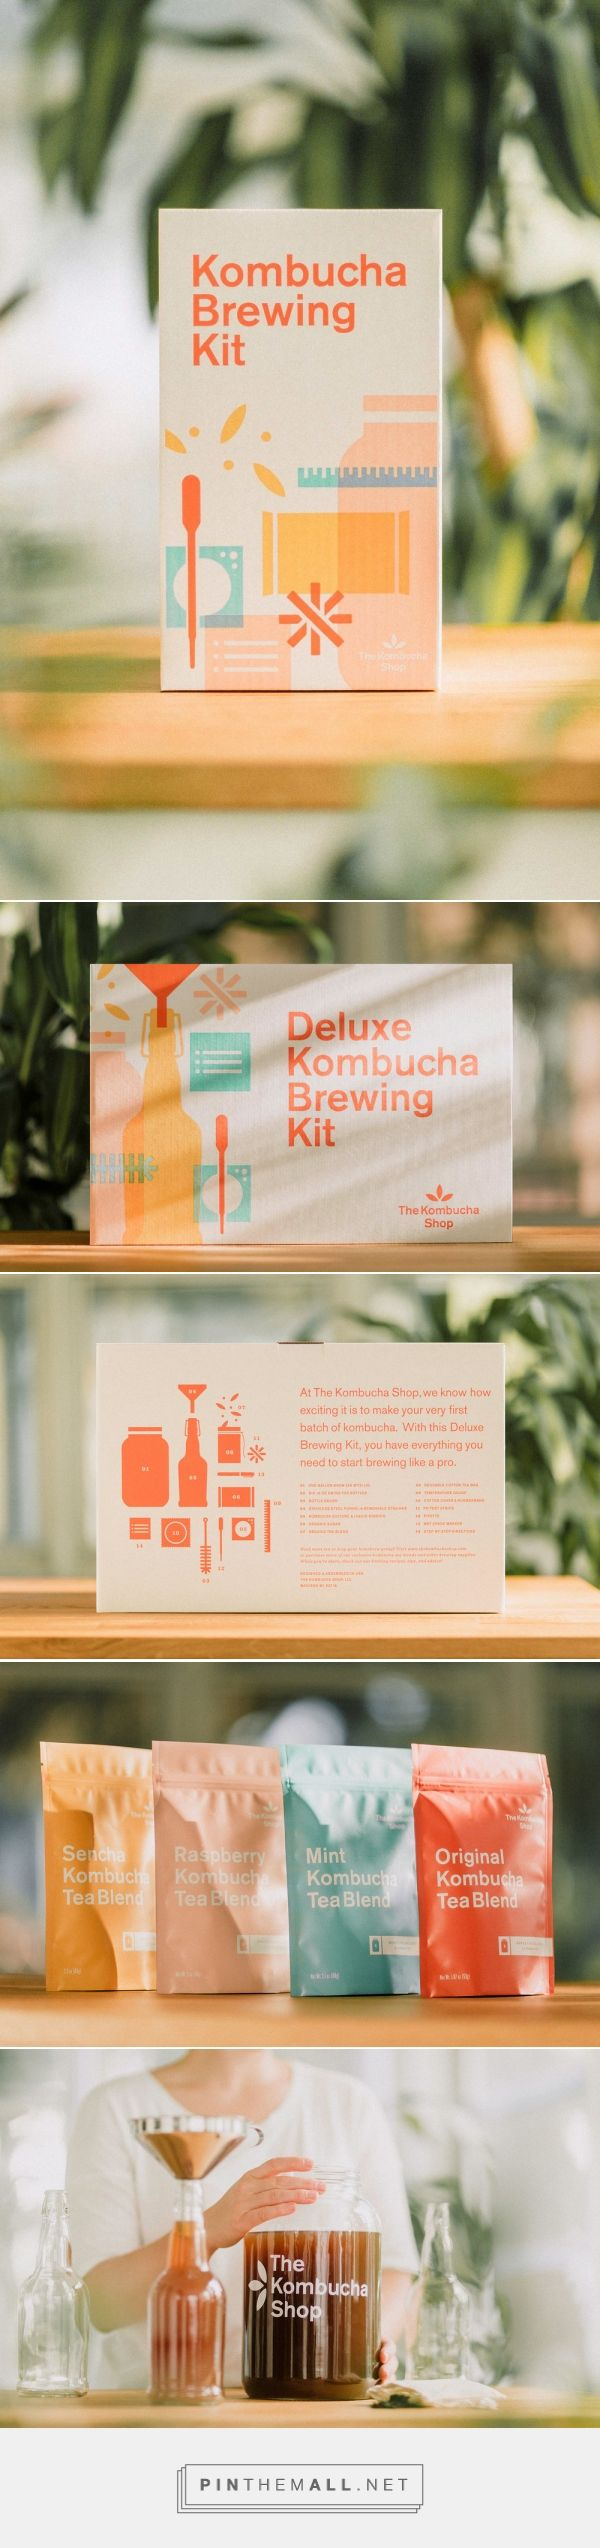 DIY Kombucha Kit  packaging by Studio MPLS